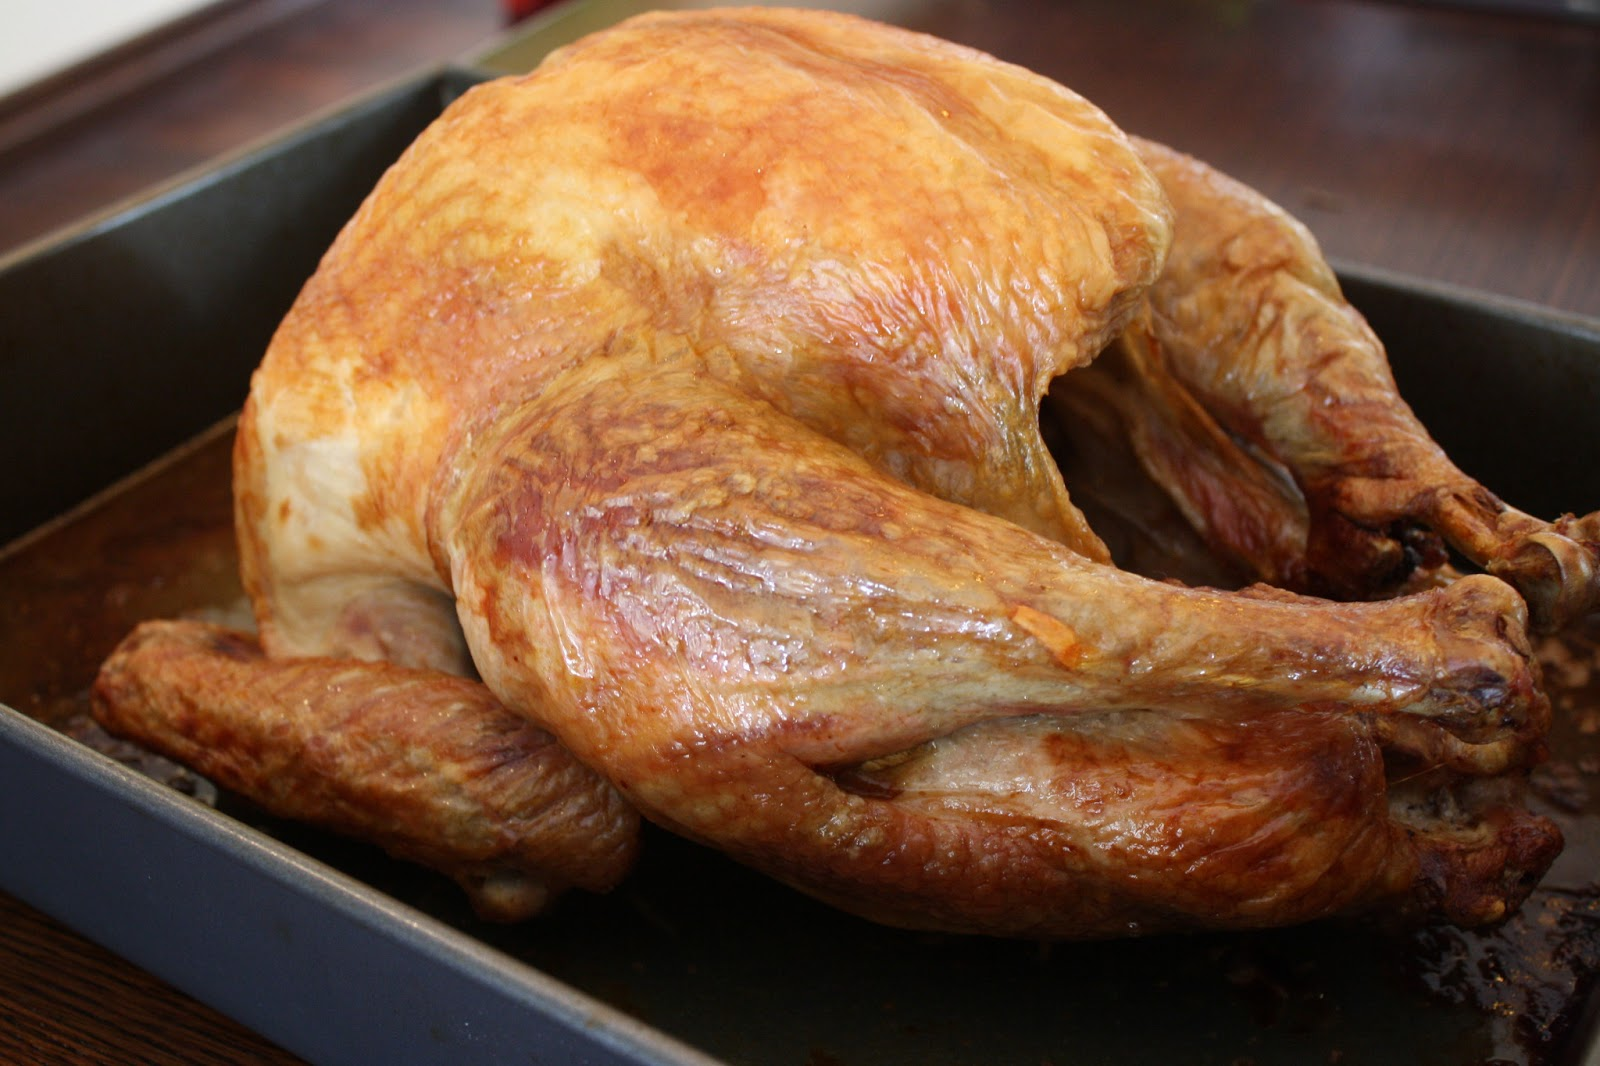 Adaptive cooking roast turkey convection oven for How long does it take to cook a 8lb turkey